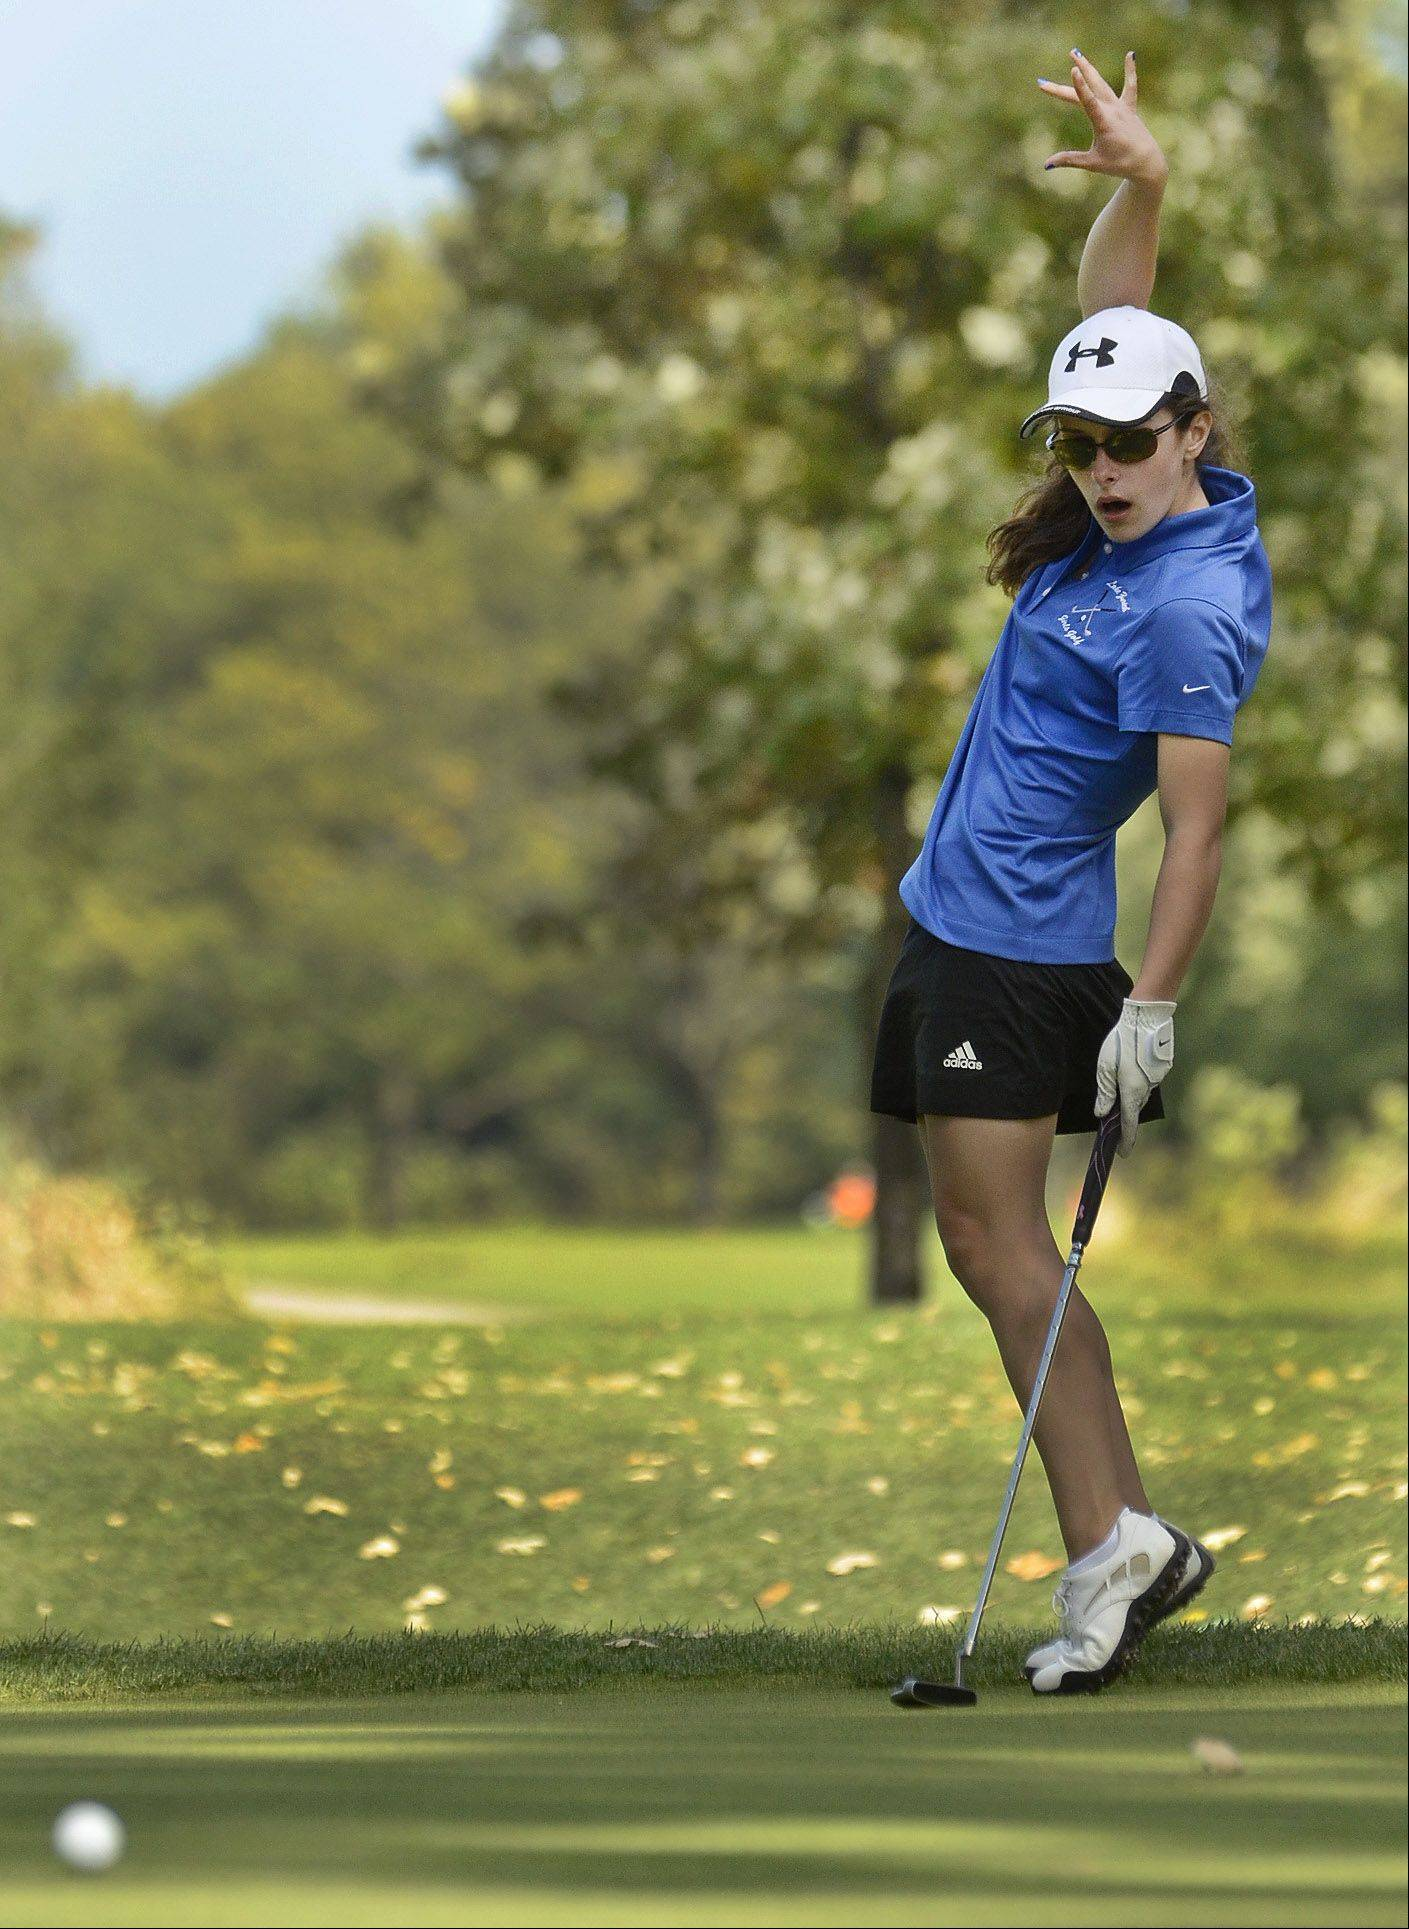 Megan Malcolm of Lake Zurich uses some body english on her putt on No. 15 during the North Suburban Conference girls golf meet at Deerpath Golf Course in Lake Forest.